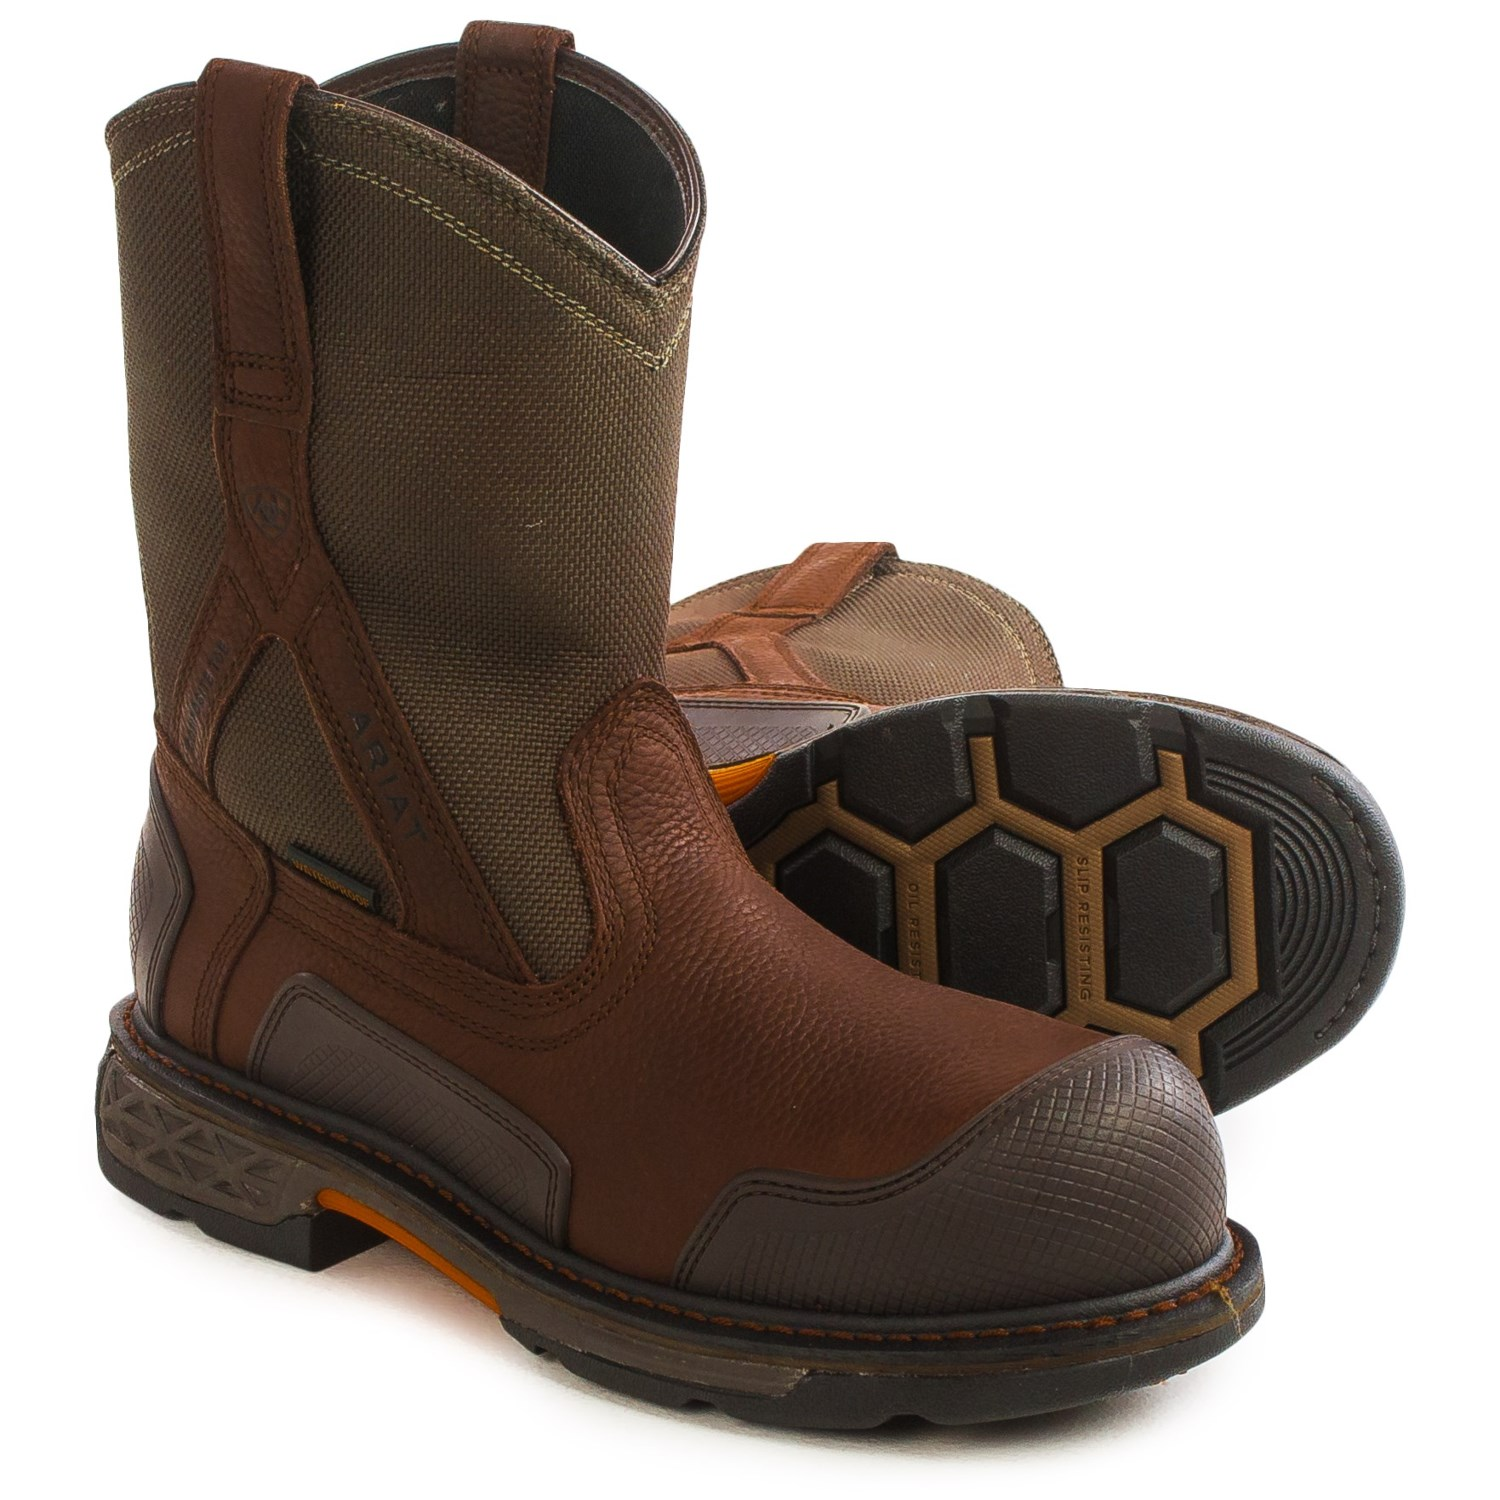 Working Boots For Men Iu7gBEcL